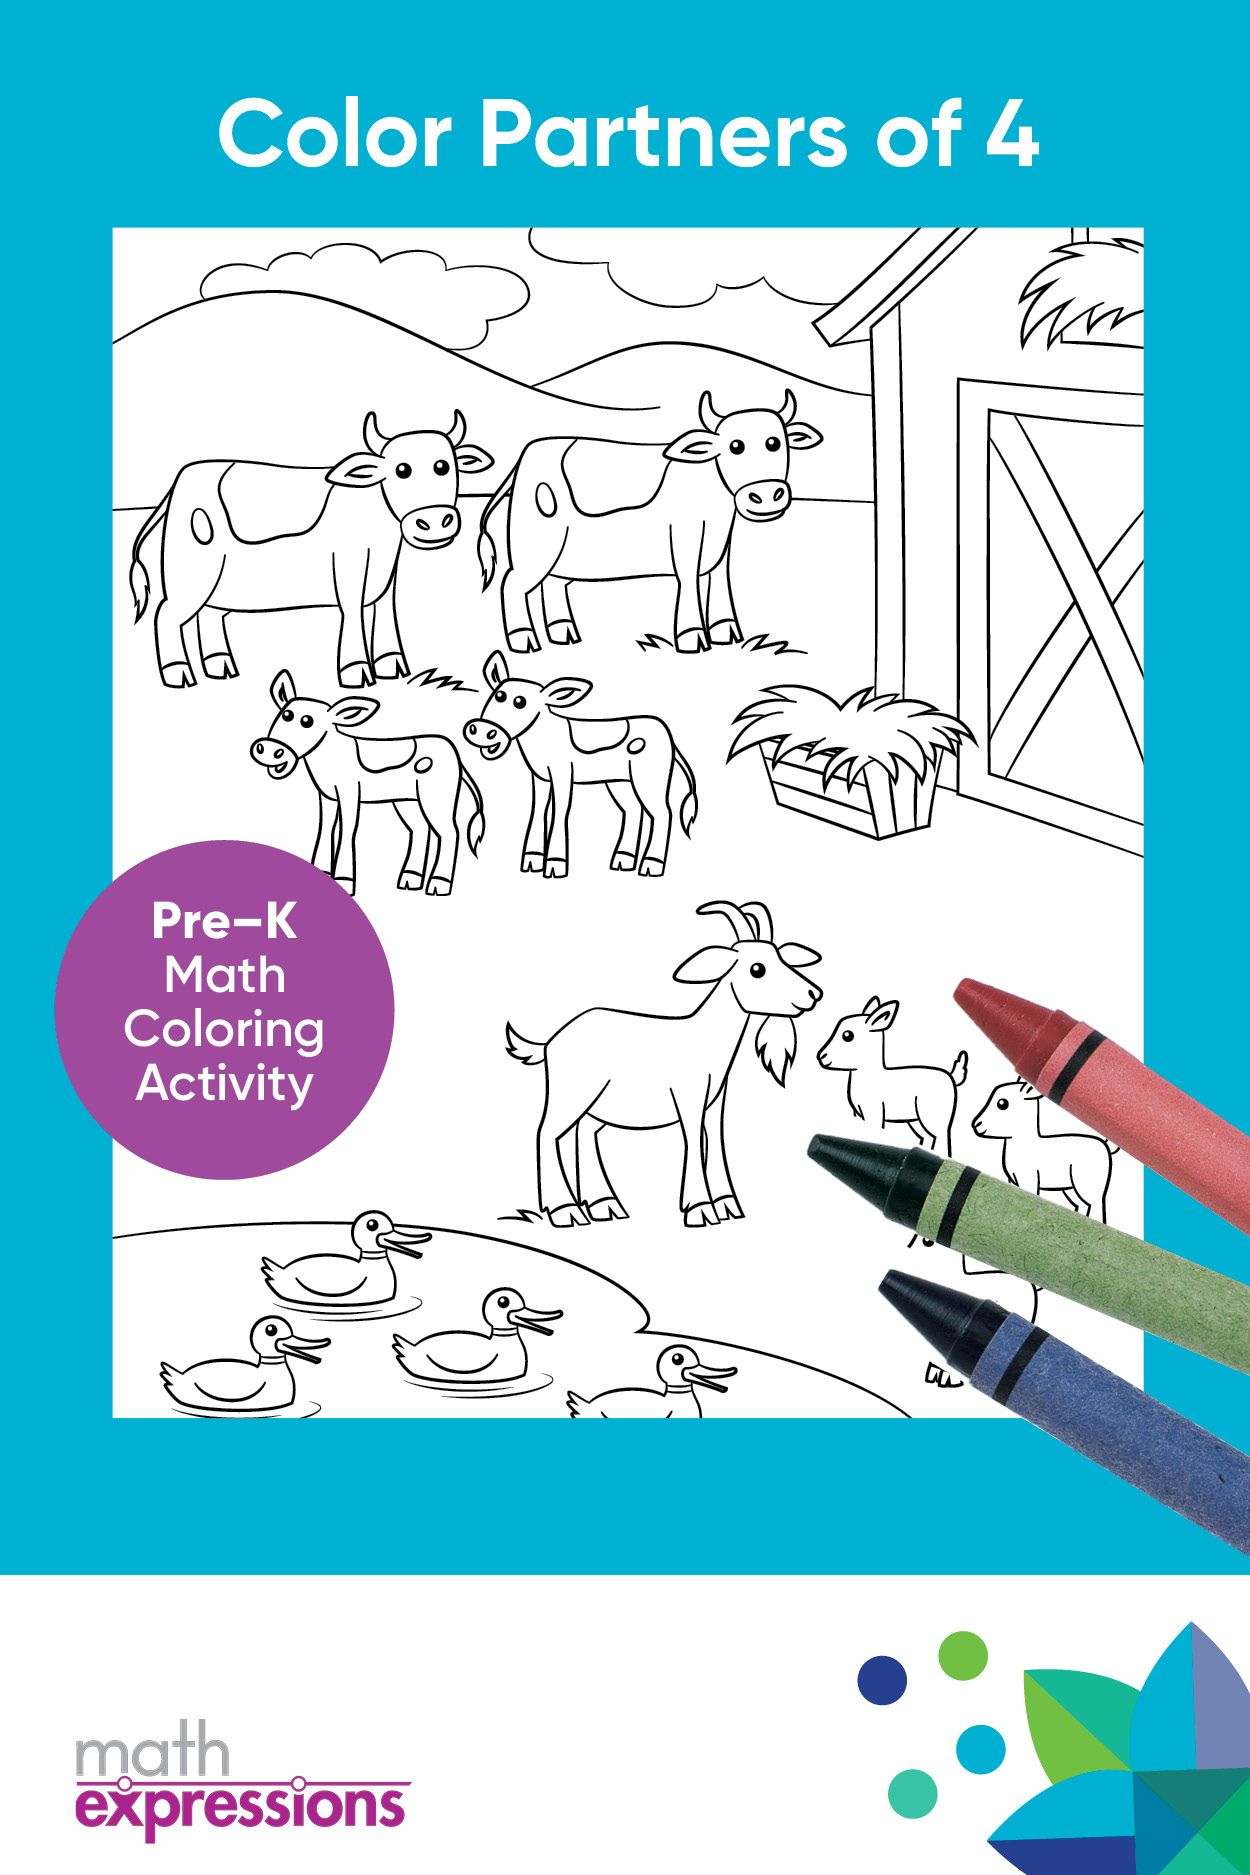 Use These Downloadable Math Activities For Prek Students